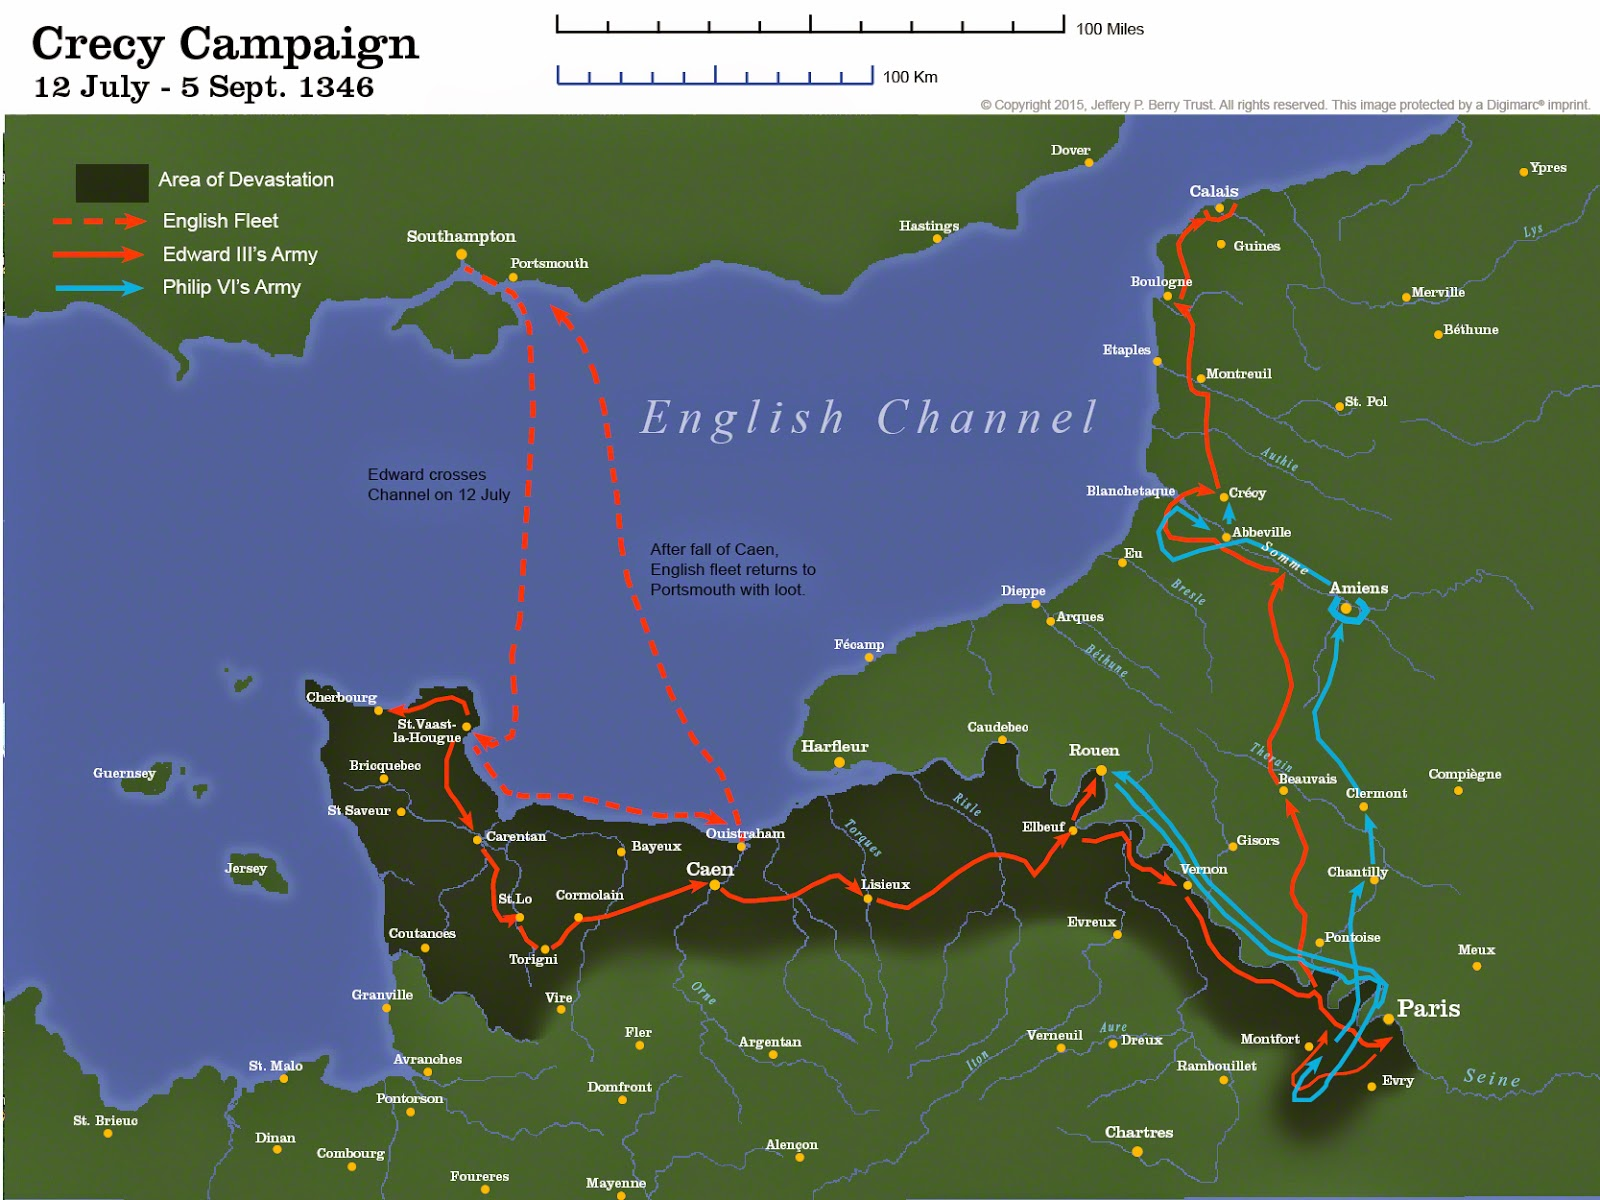 Crecy Campaign Map for posting